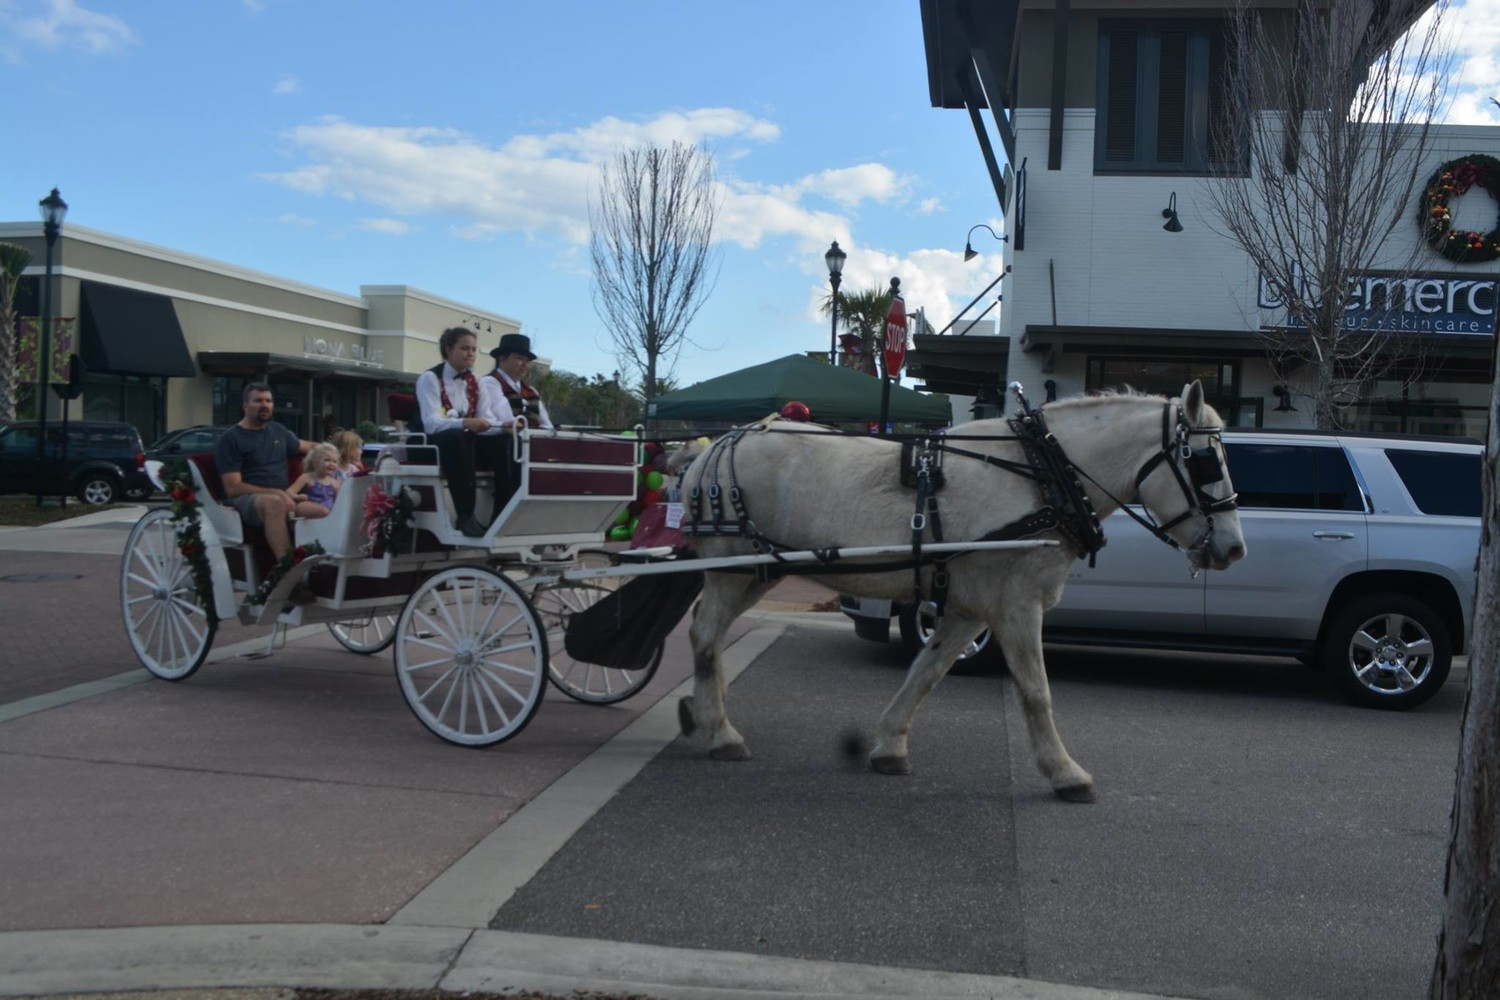 A horse-drawn carriage rolls down the street at Sawgrass Village.